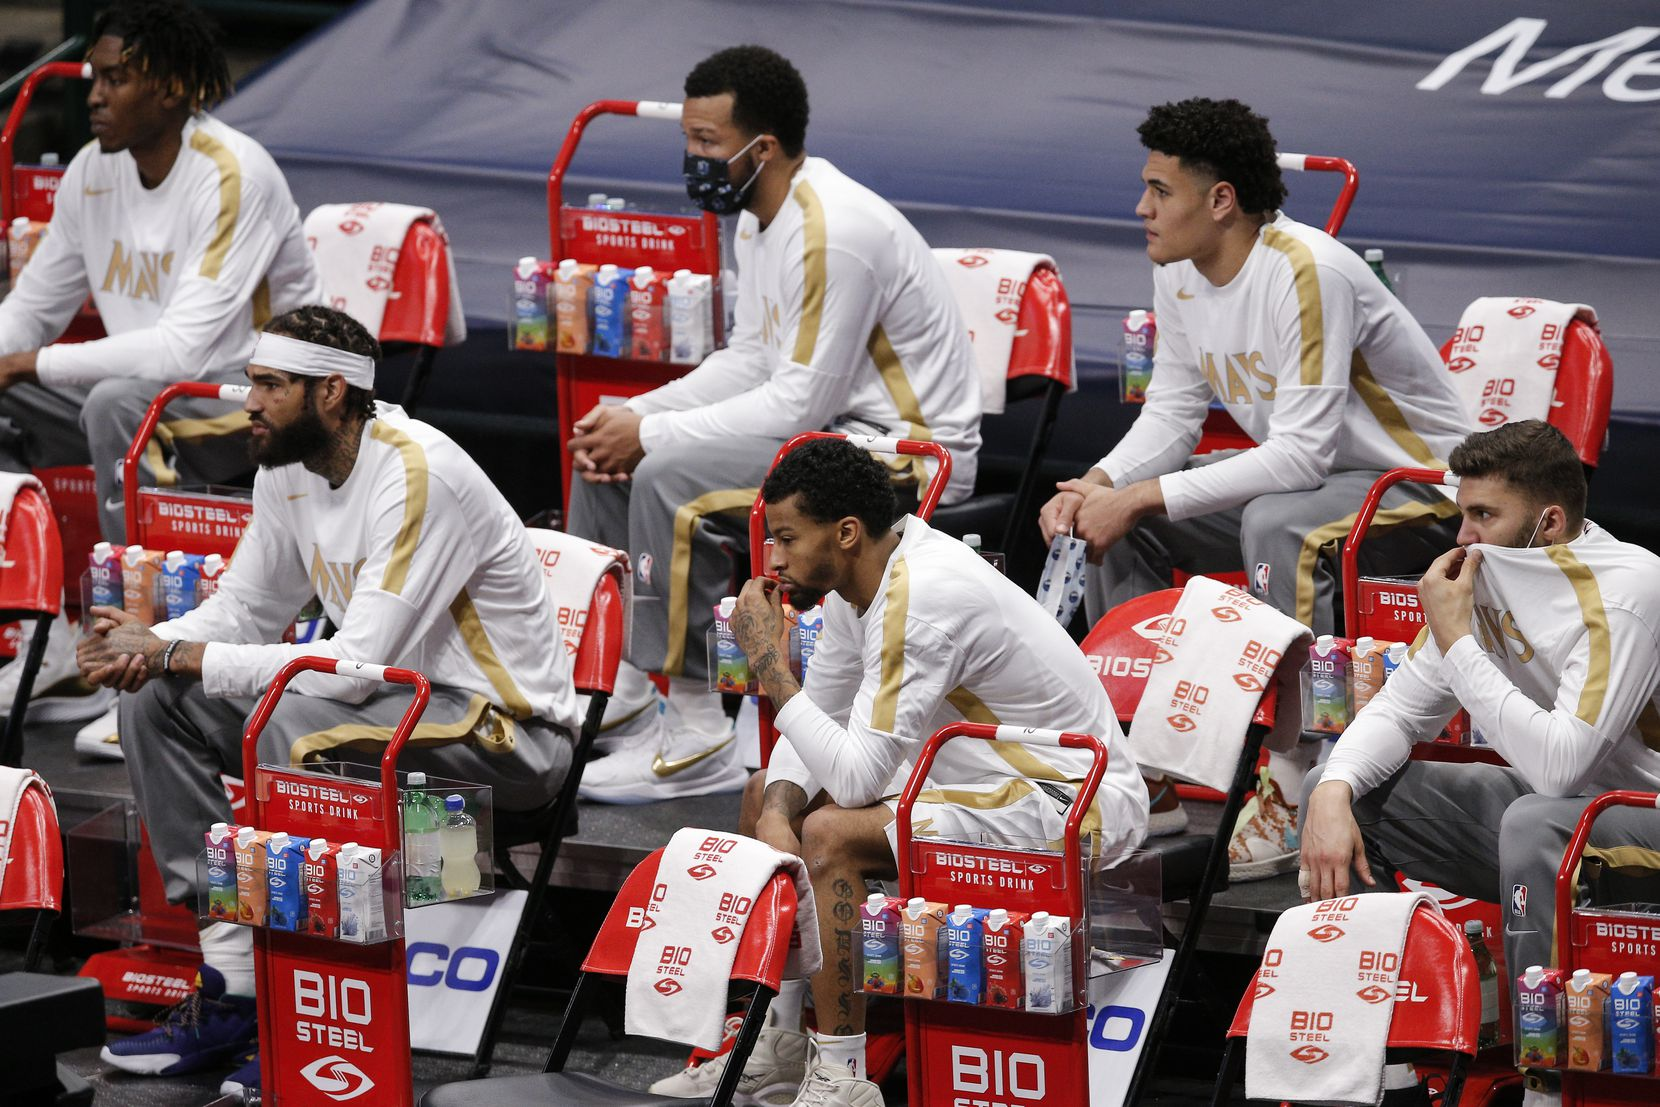 The Dallas Mavericks reserve players sit socially distanced on the sidelines during the first half of an NBA basketball game against the Miami Heat, Friday, January 1, 2021. (Brandon Wade/Special Contributor)